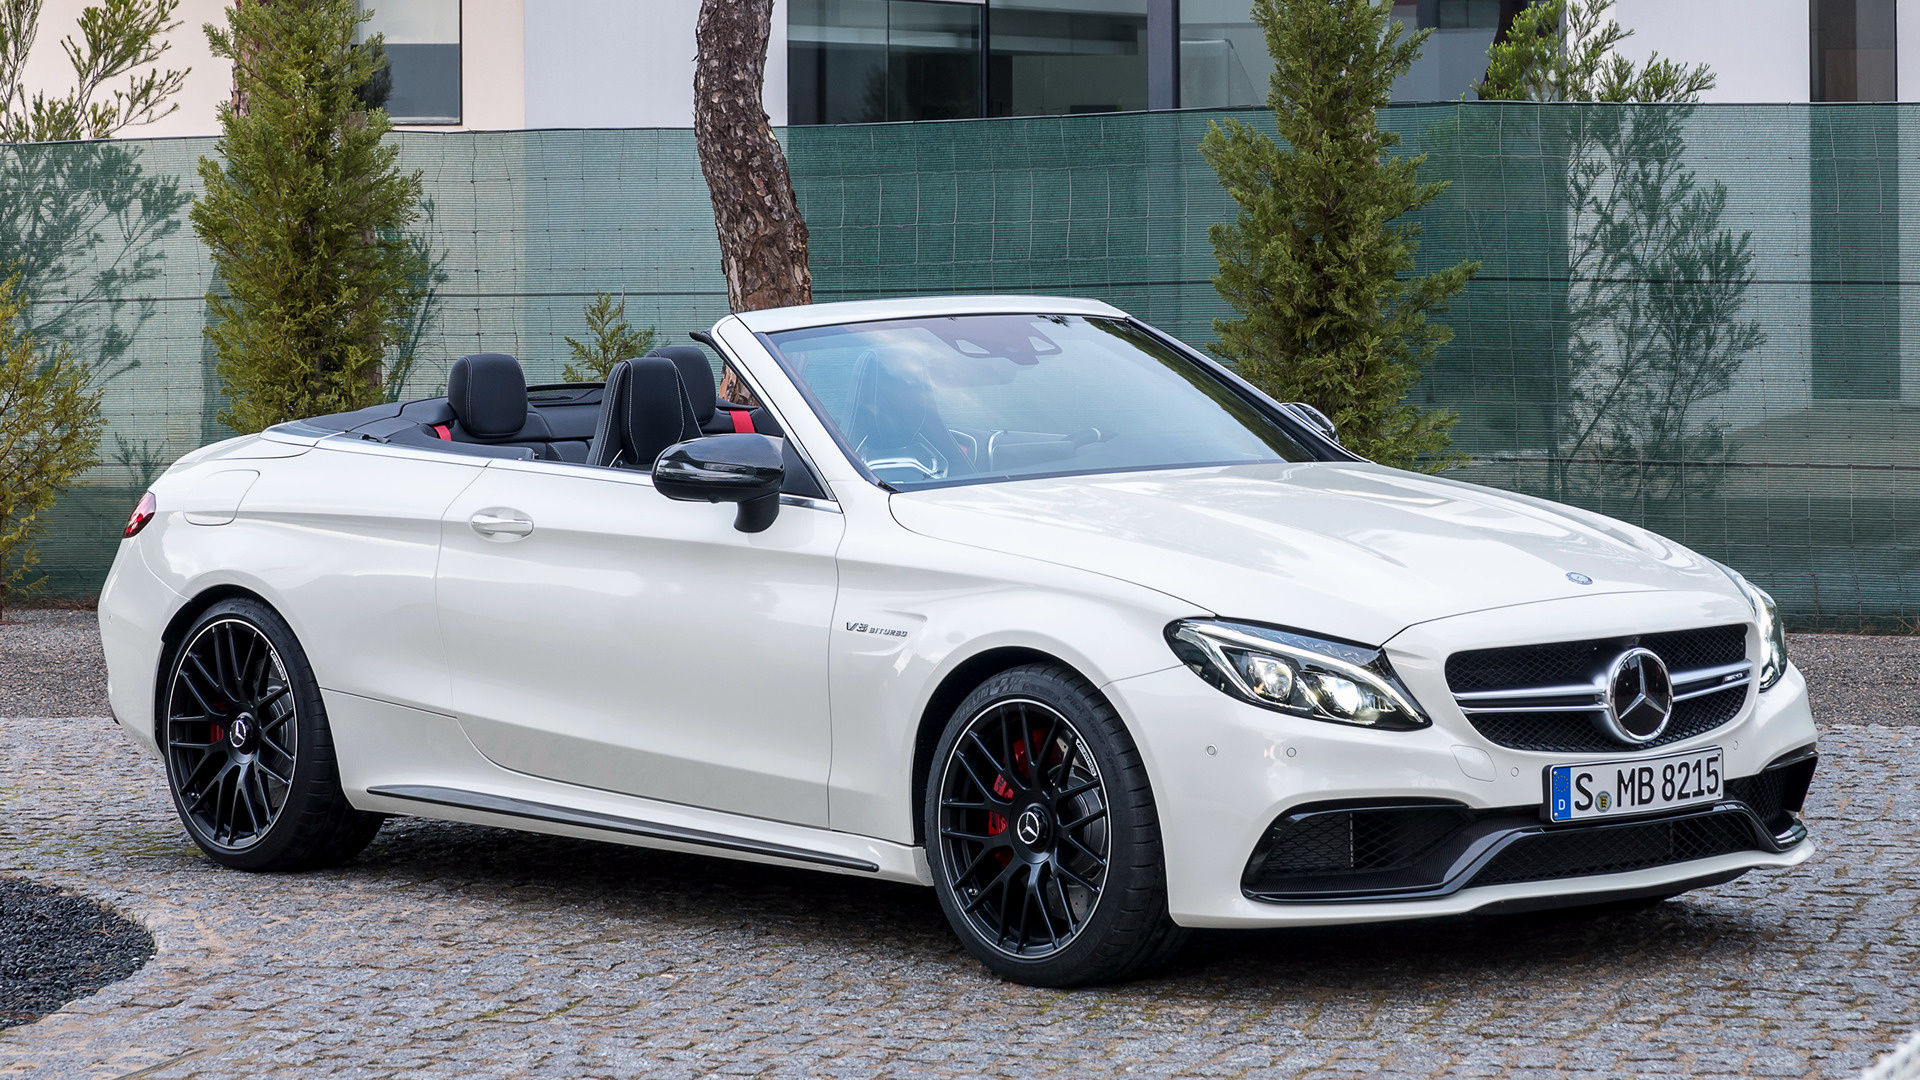 2016 mercedes amg c 63 s cabriolet wallpapers and hd. Black Bedroom Furniture Sets. Home Design Ideas